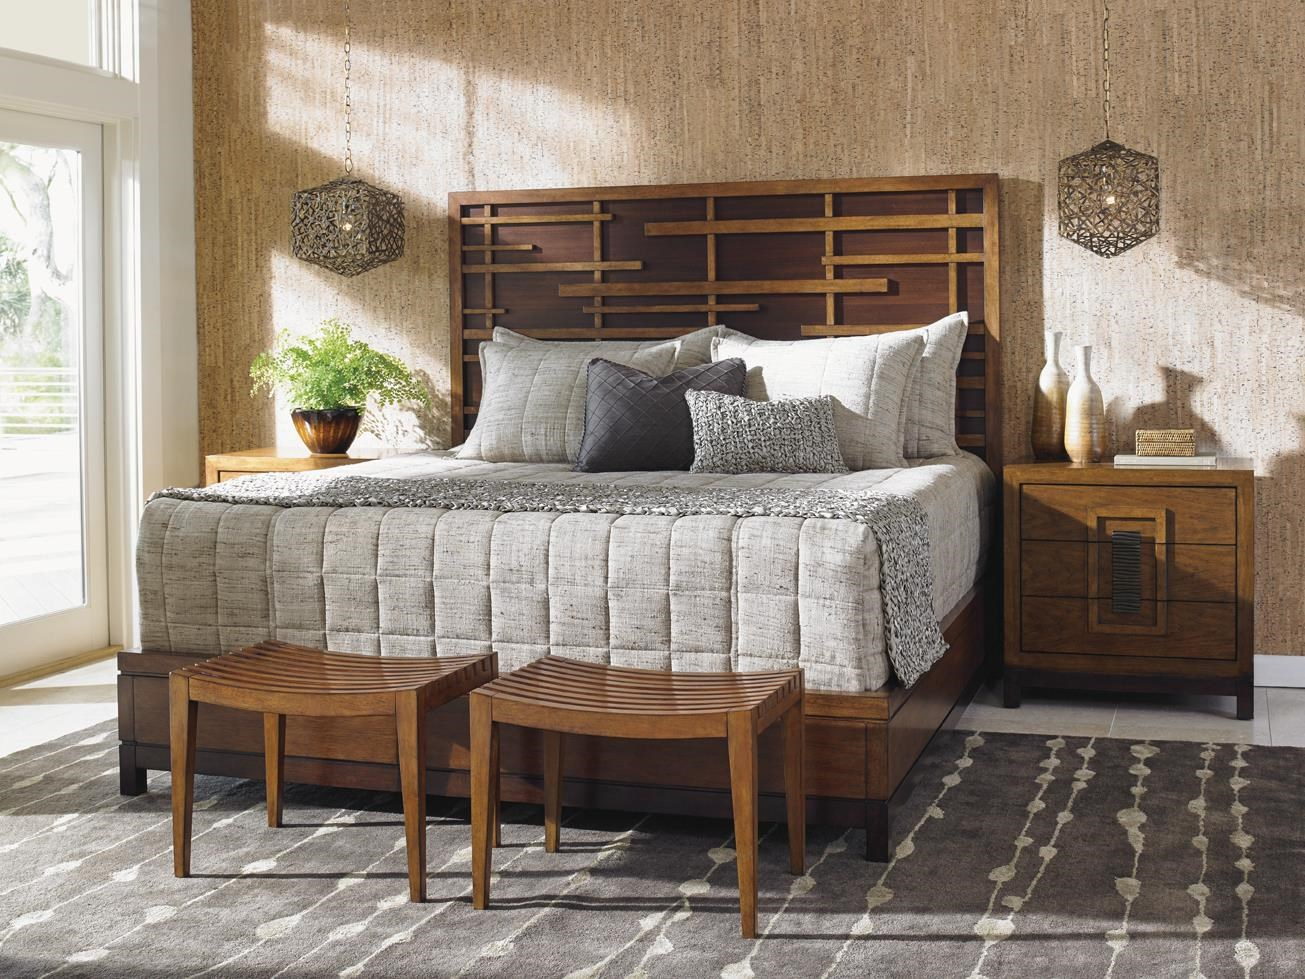 Etonnant Island Fusion King Bedroom Group By Tommy Bahama Home At Baeru0027s Furniture